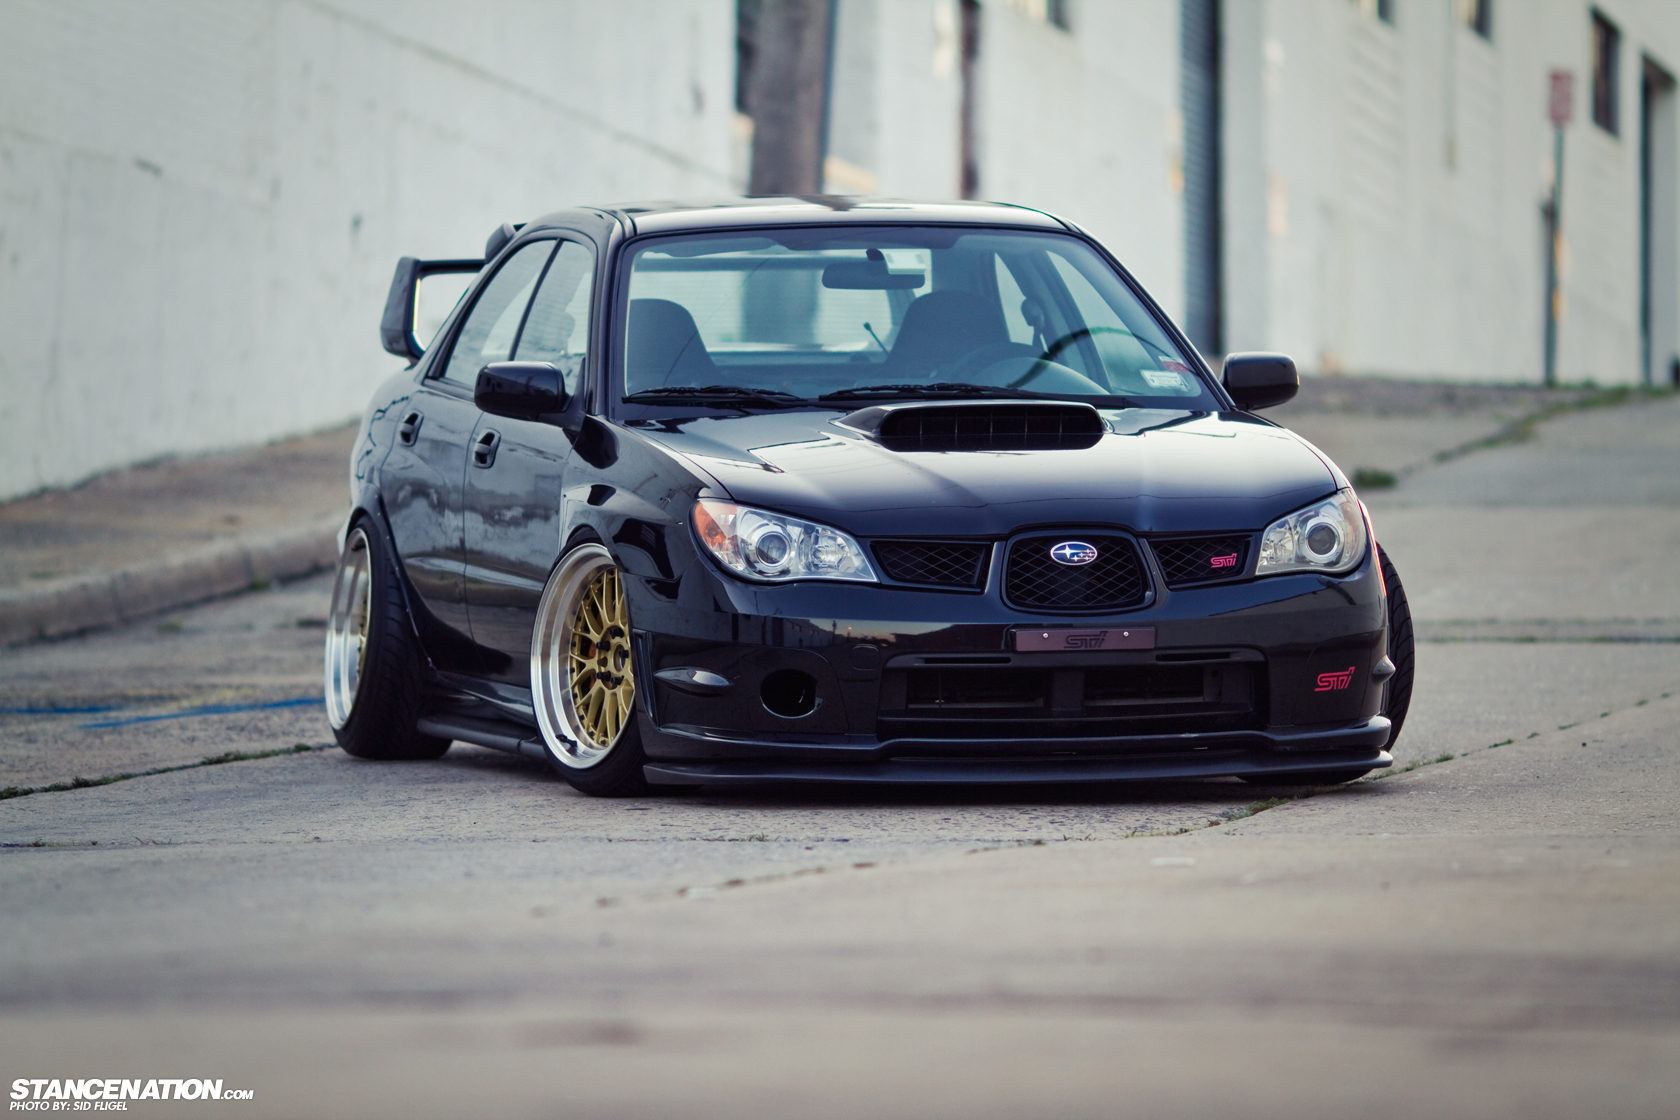 2014 Wrx Sti >> Low & Loud // Vic's Slammed Subaru STI. | StanceNation™ // Form > Function